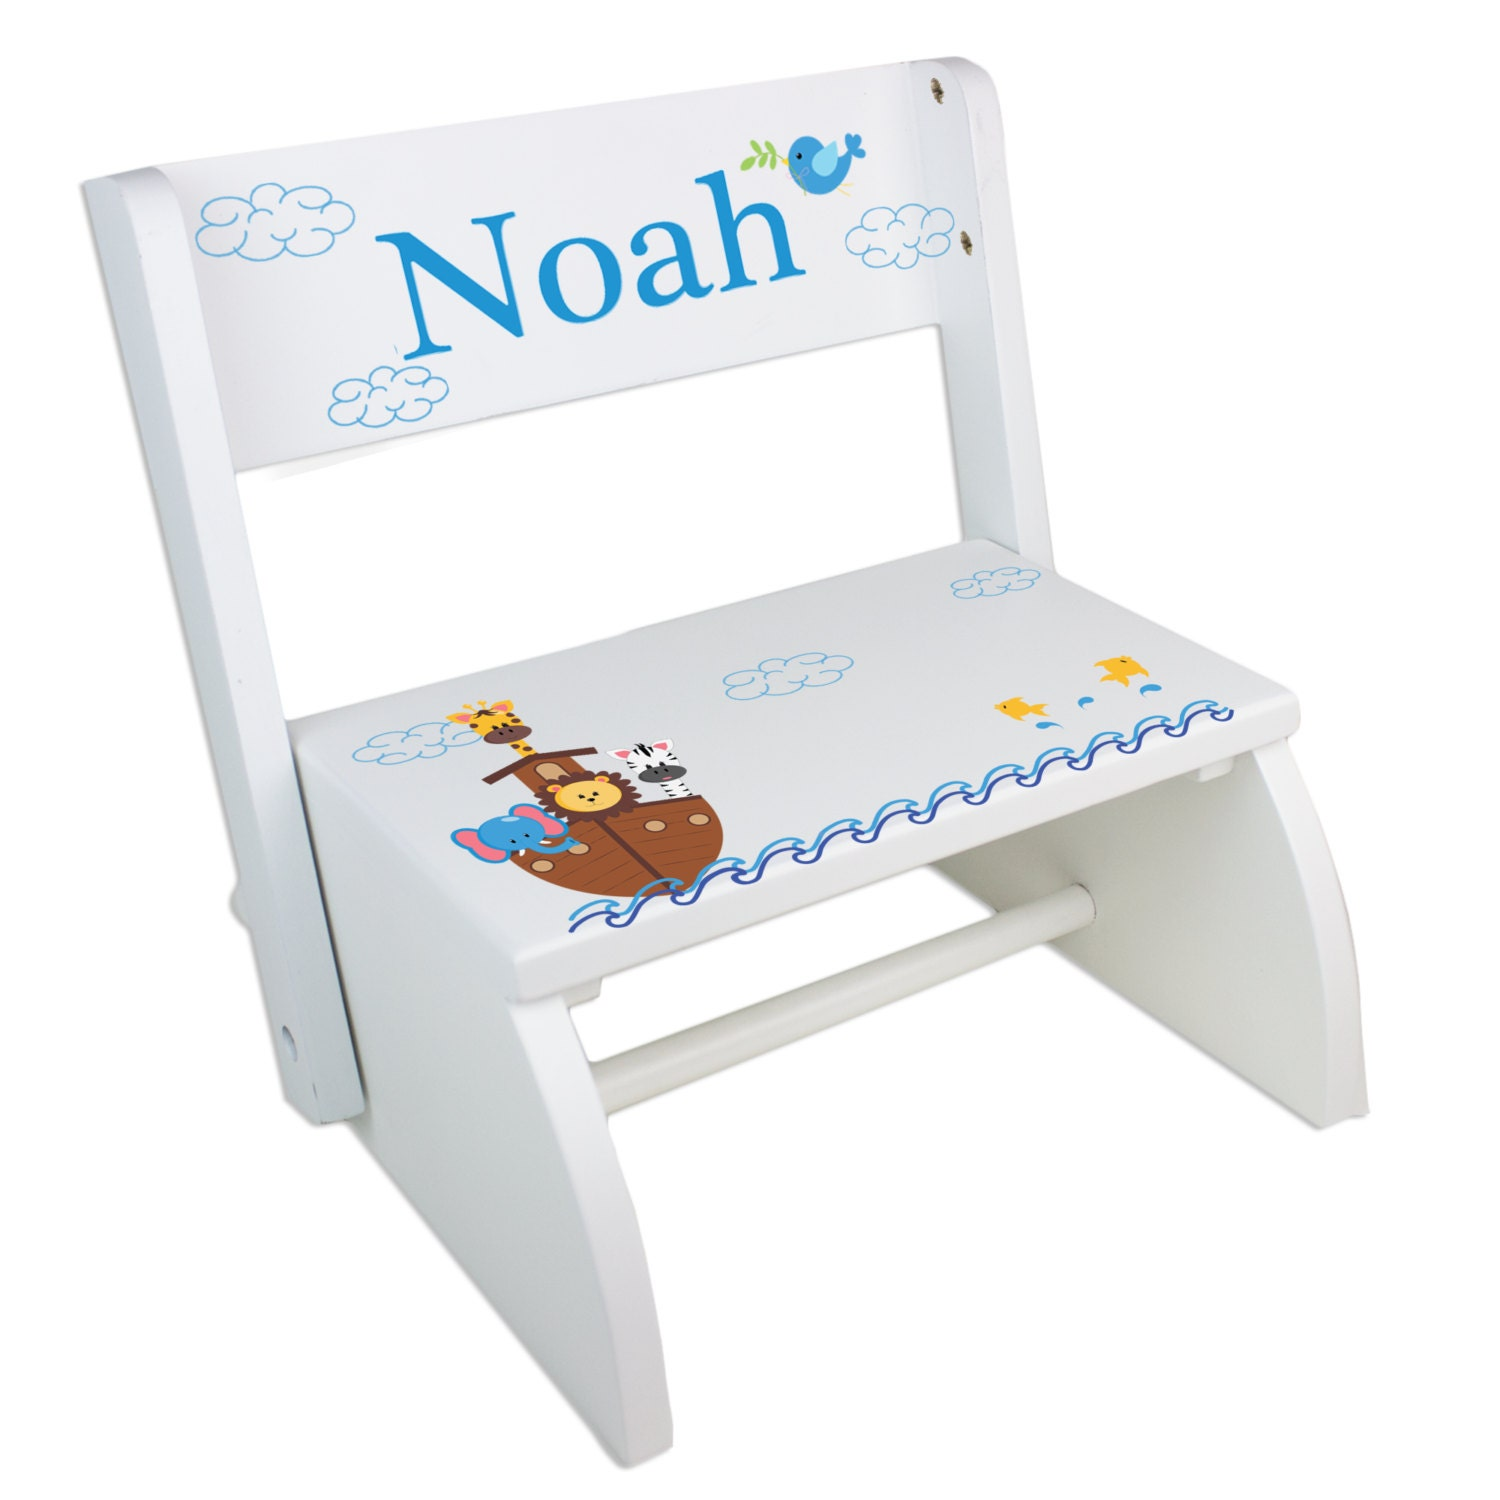 Personalized Noah S Ark Step Stool For Noahs Ark By Mybambino